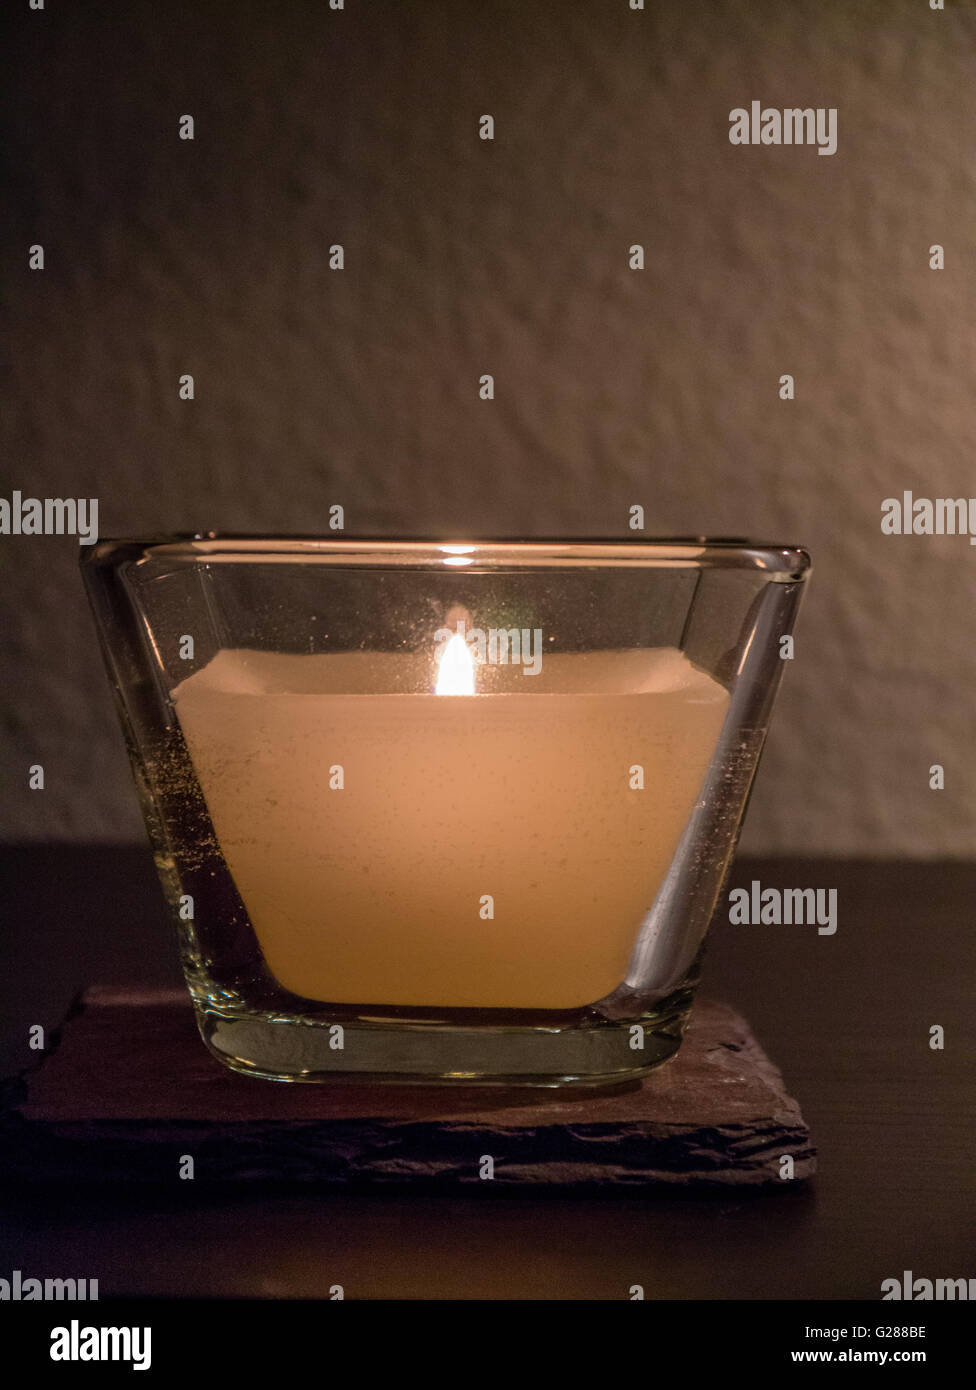 Close-up of lit candle, neutral background - Stock Image